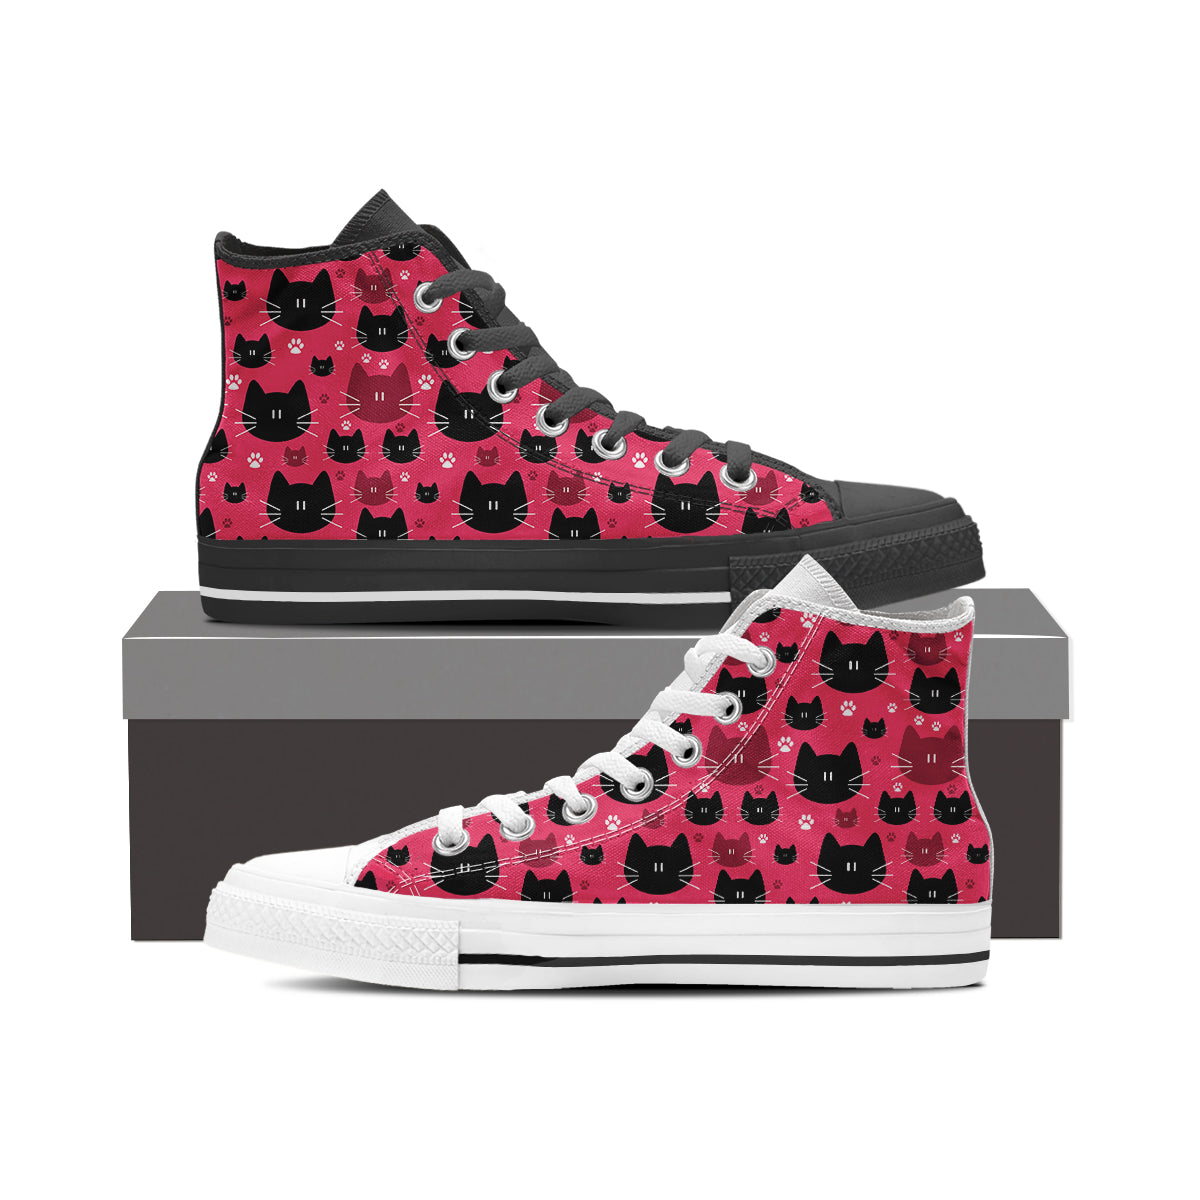 Express Black & Red Cat High Tops - Hello Moa